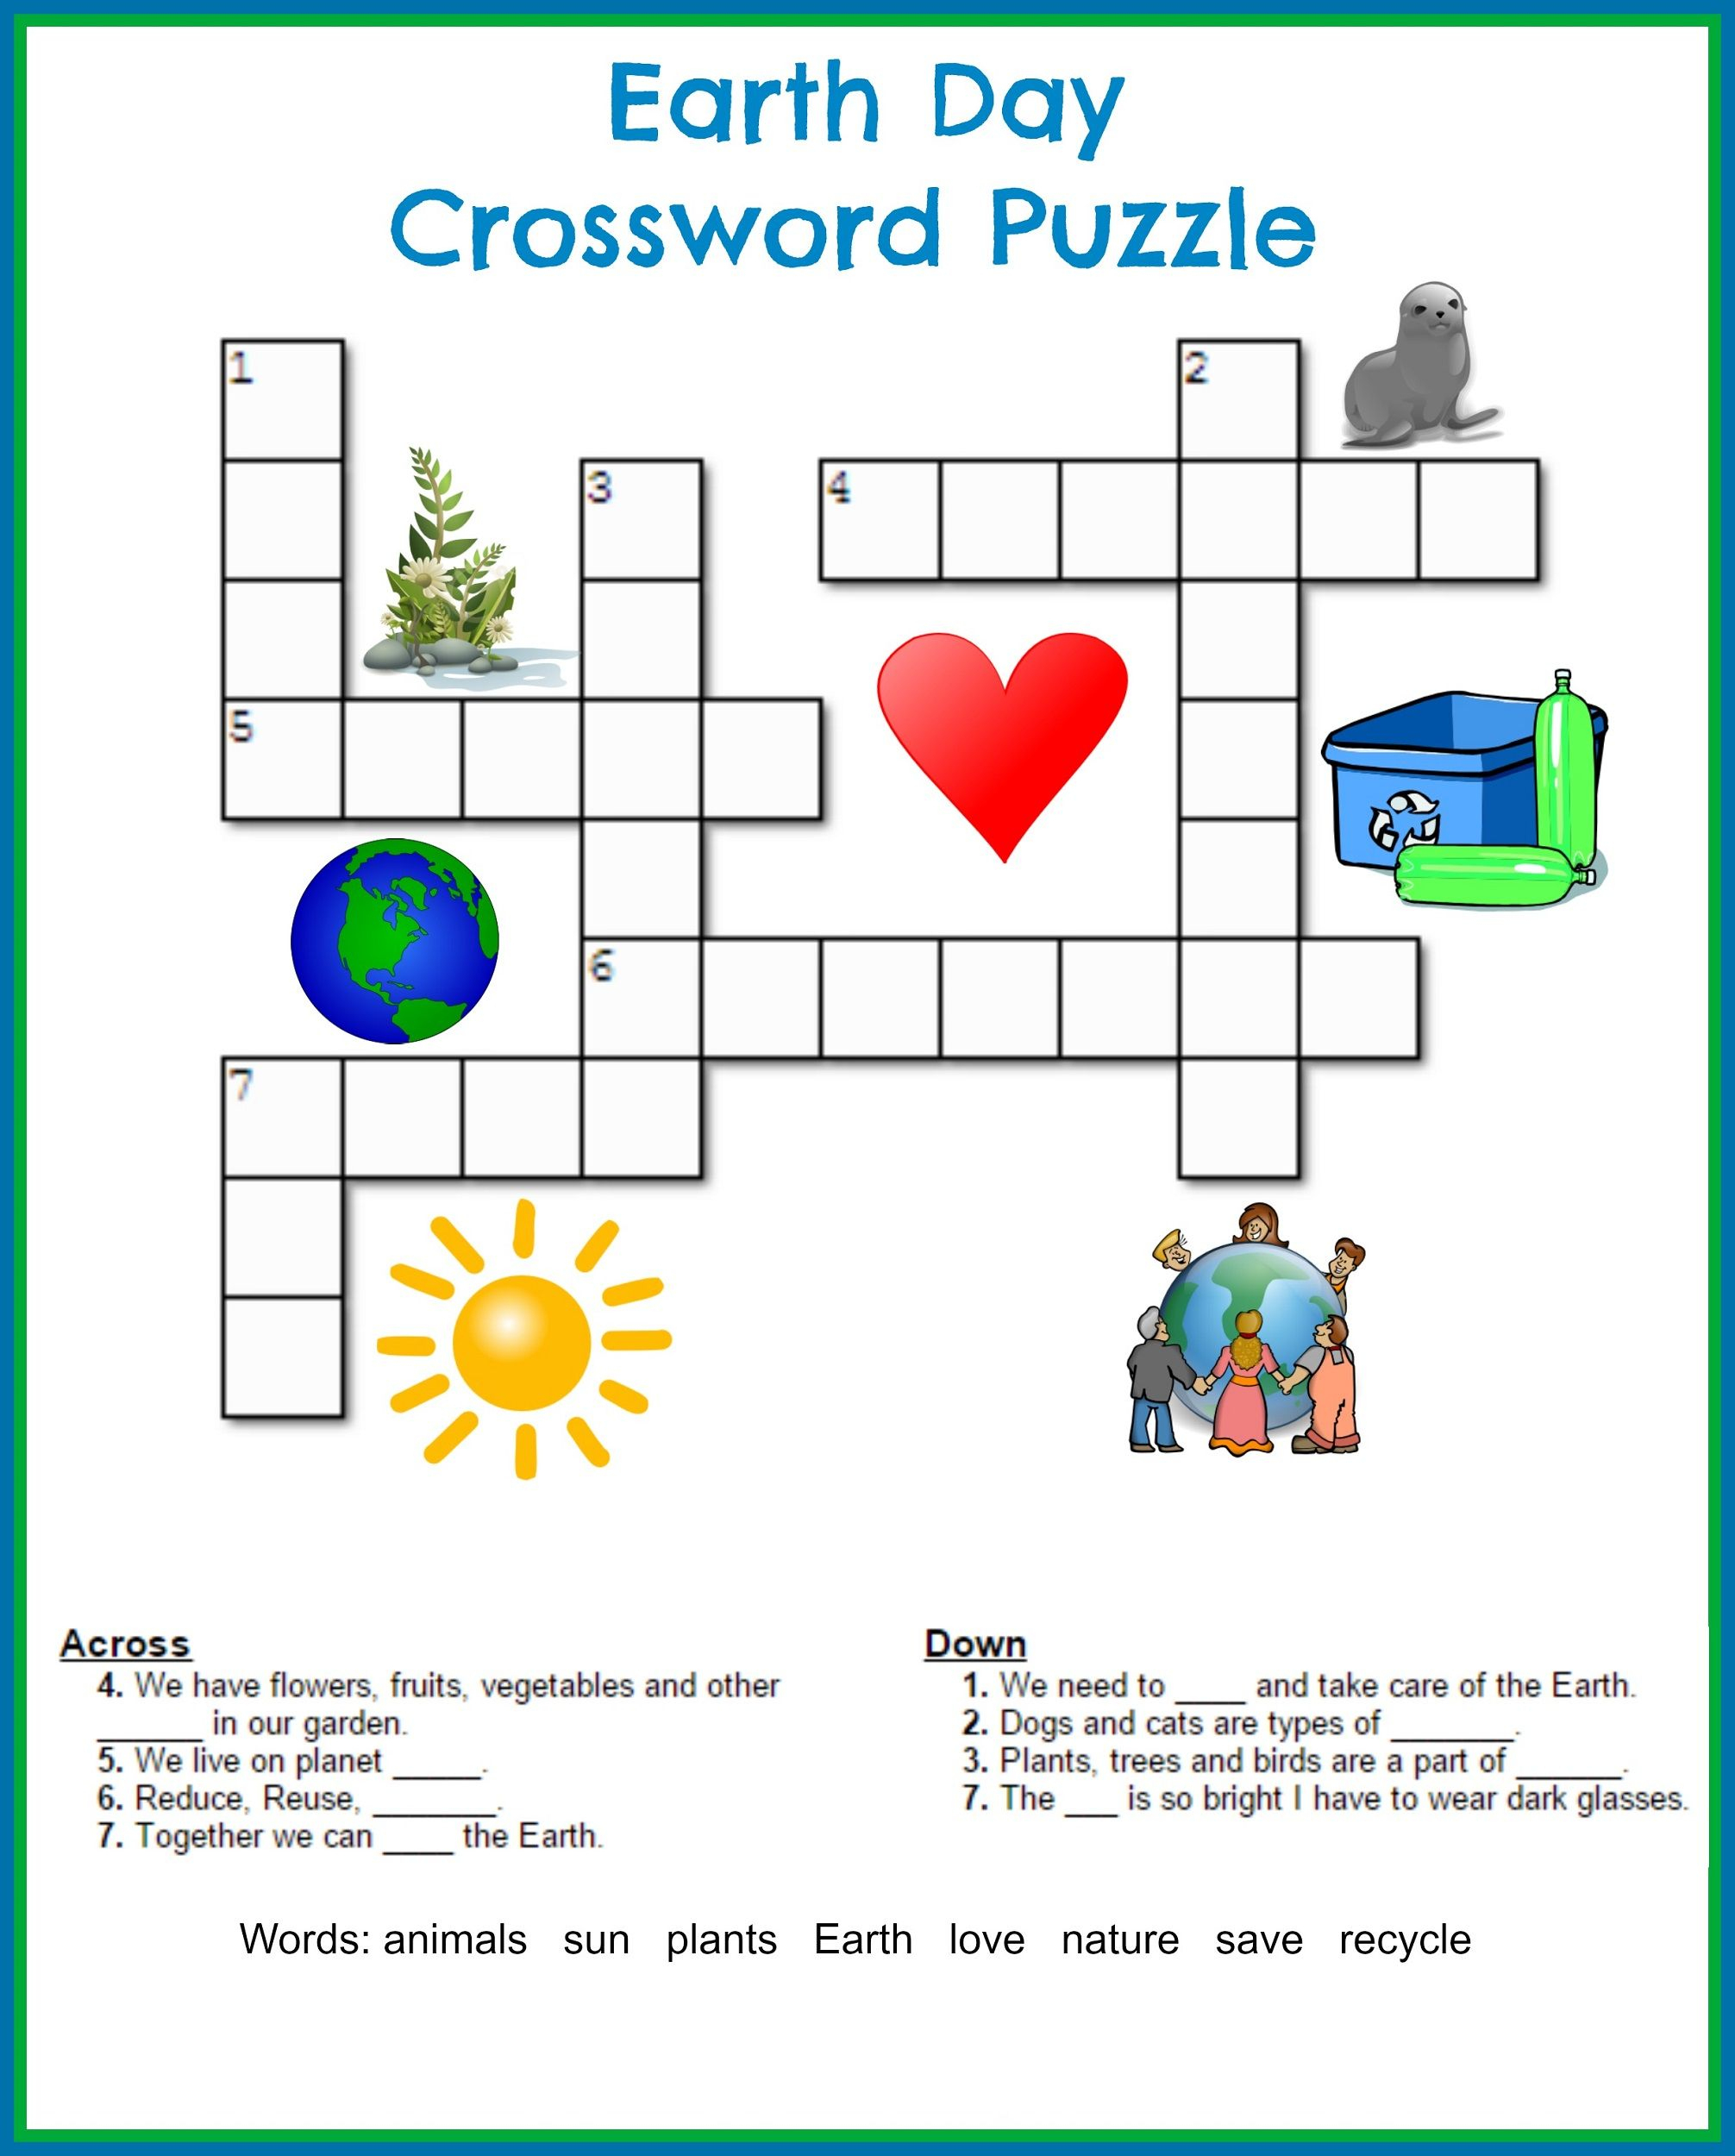 Printable Crossword Puzzles Kids | Crossword Puzzles On Earth - Printable Educational Crossword Puzzles